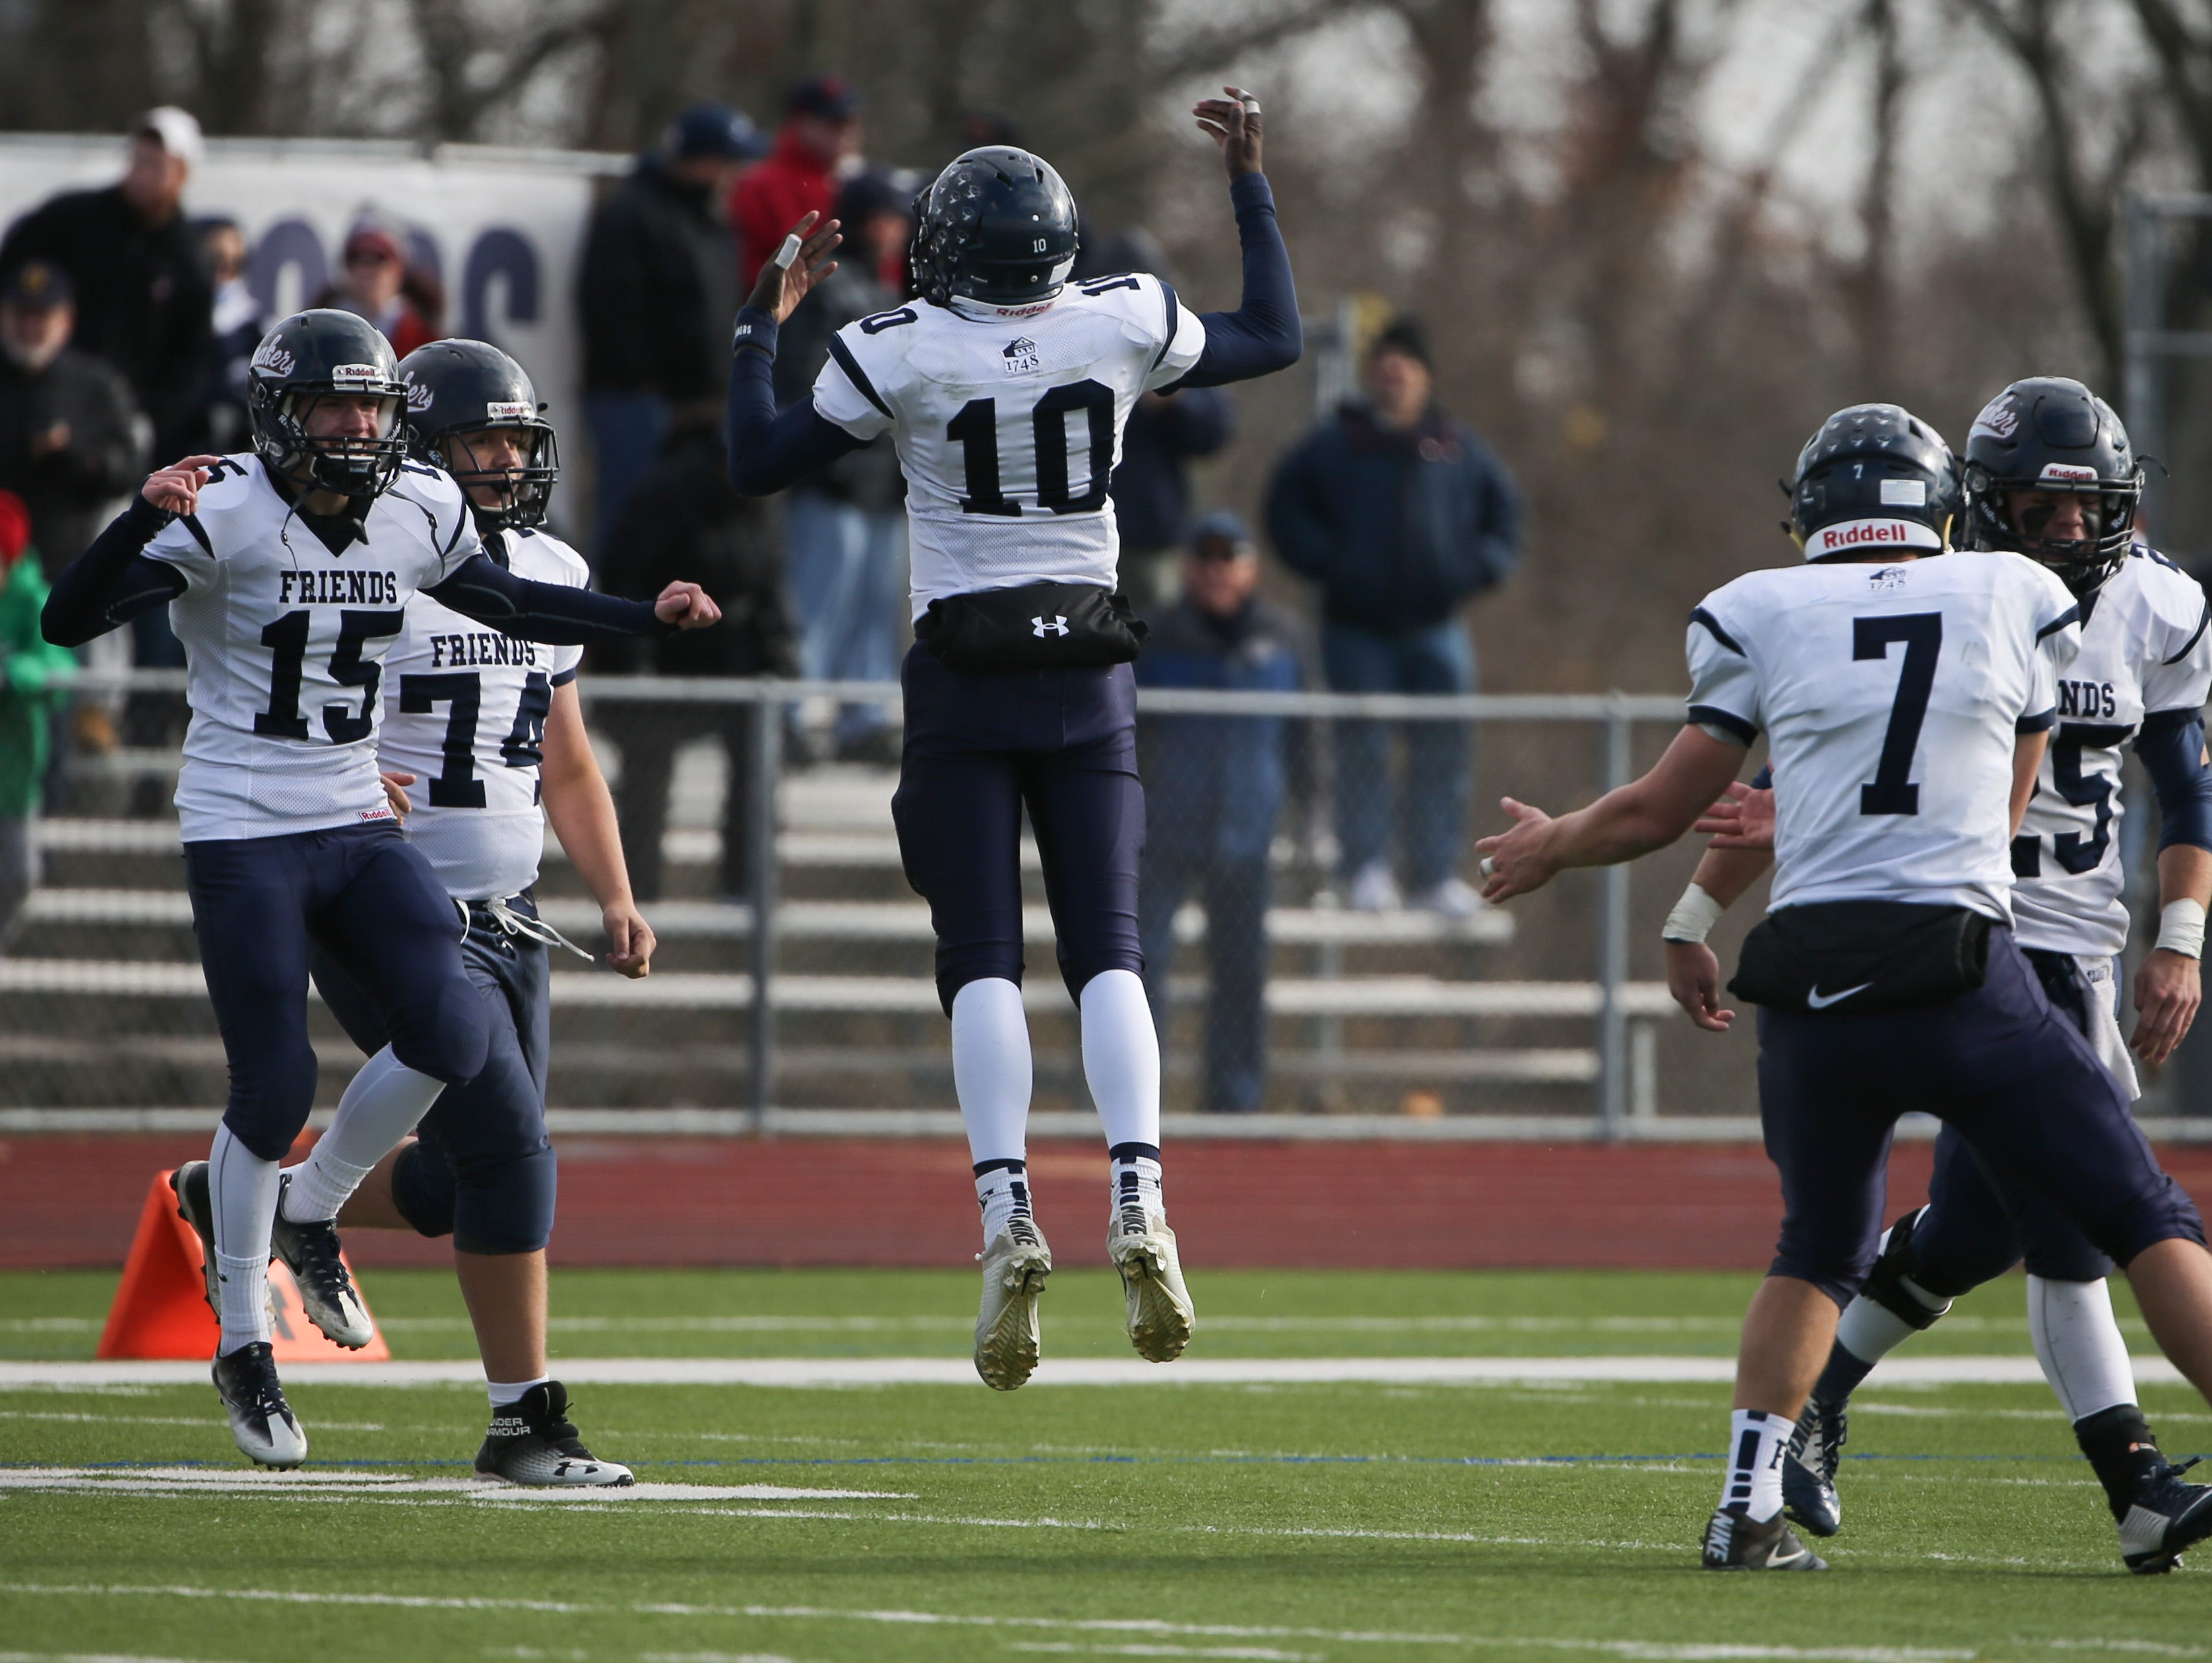 Wilmington Friends advances to the DIAA Division II state finals with a 20-6 win over St. Georges Saturday.